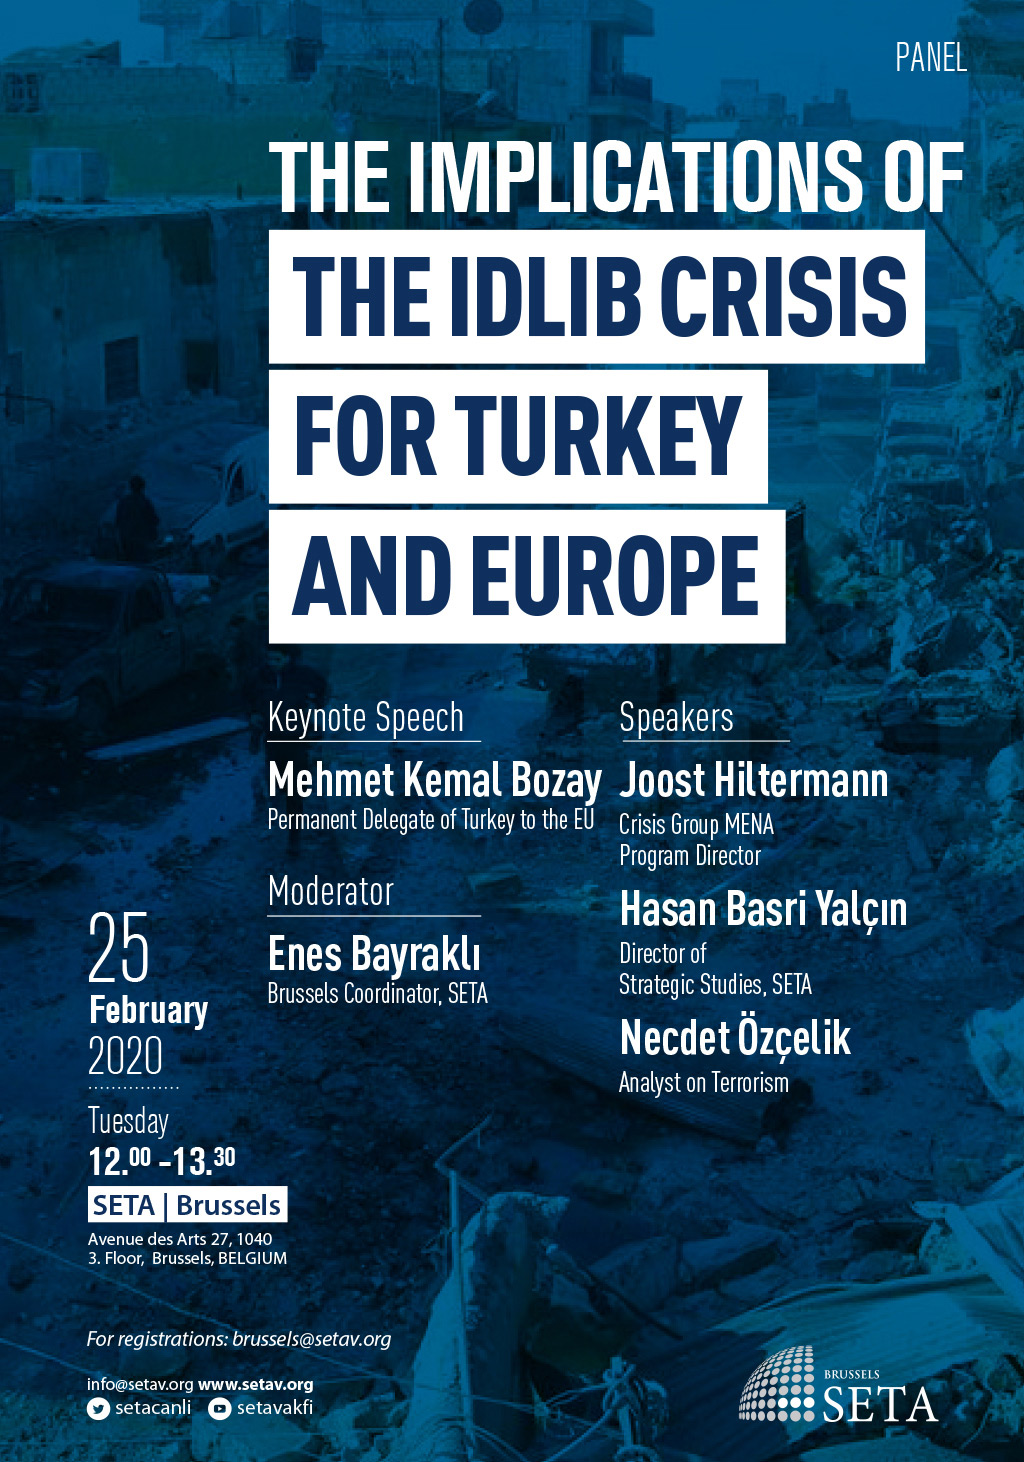 Panel: The Implications of the Idlib Crisis for Turkey and Europe